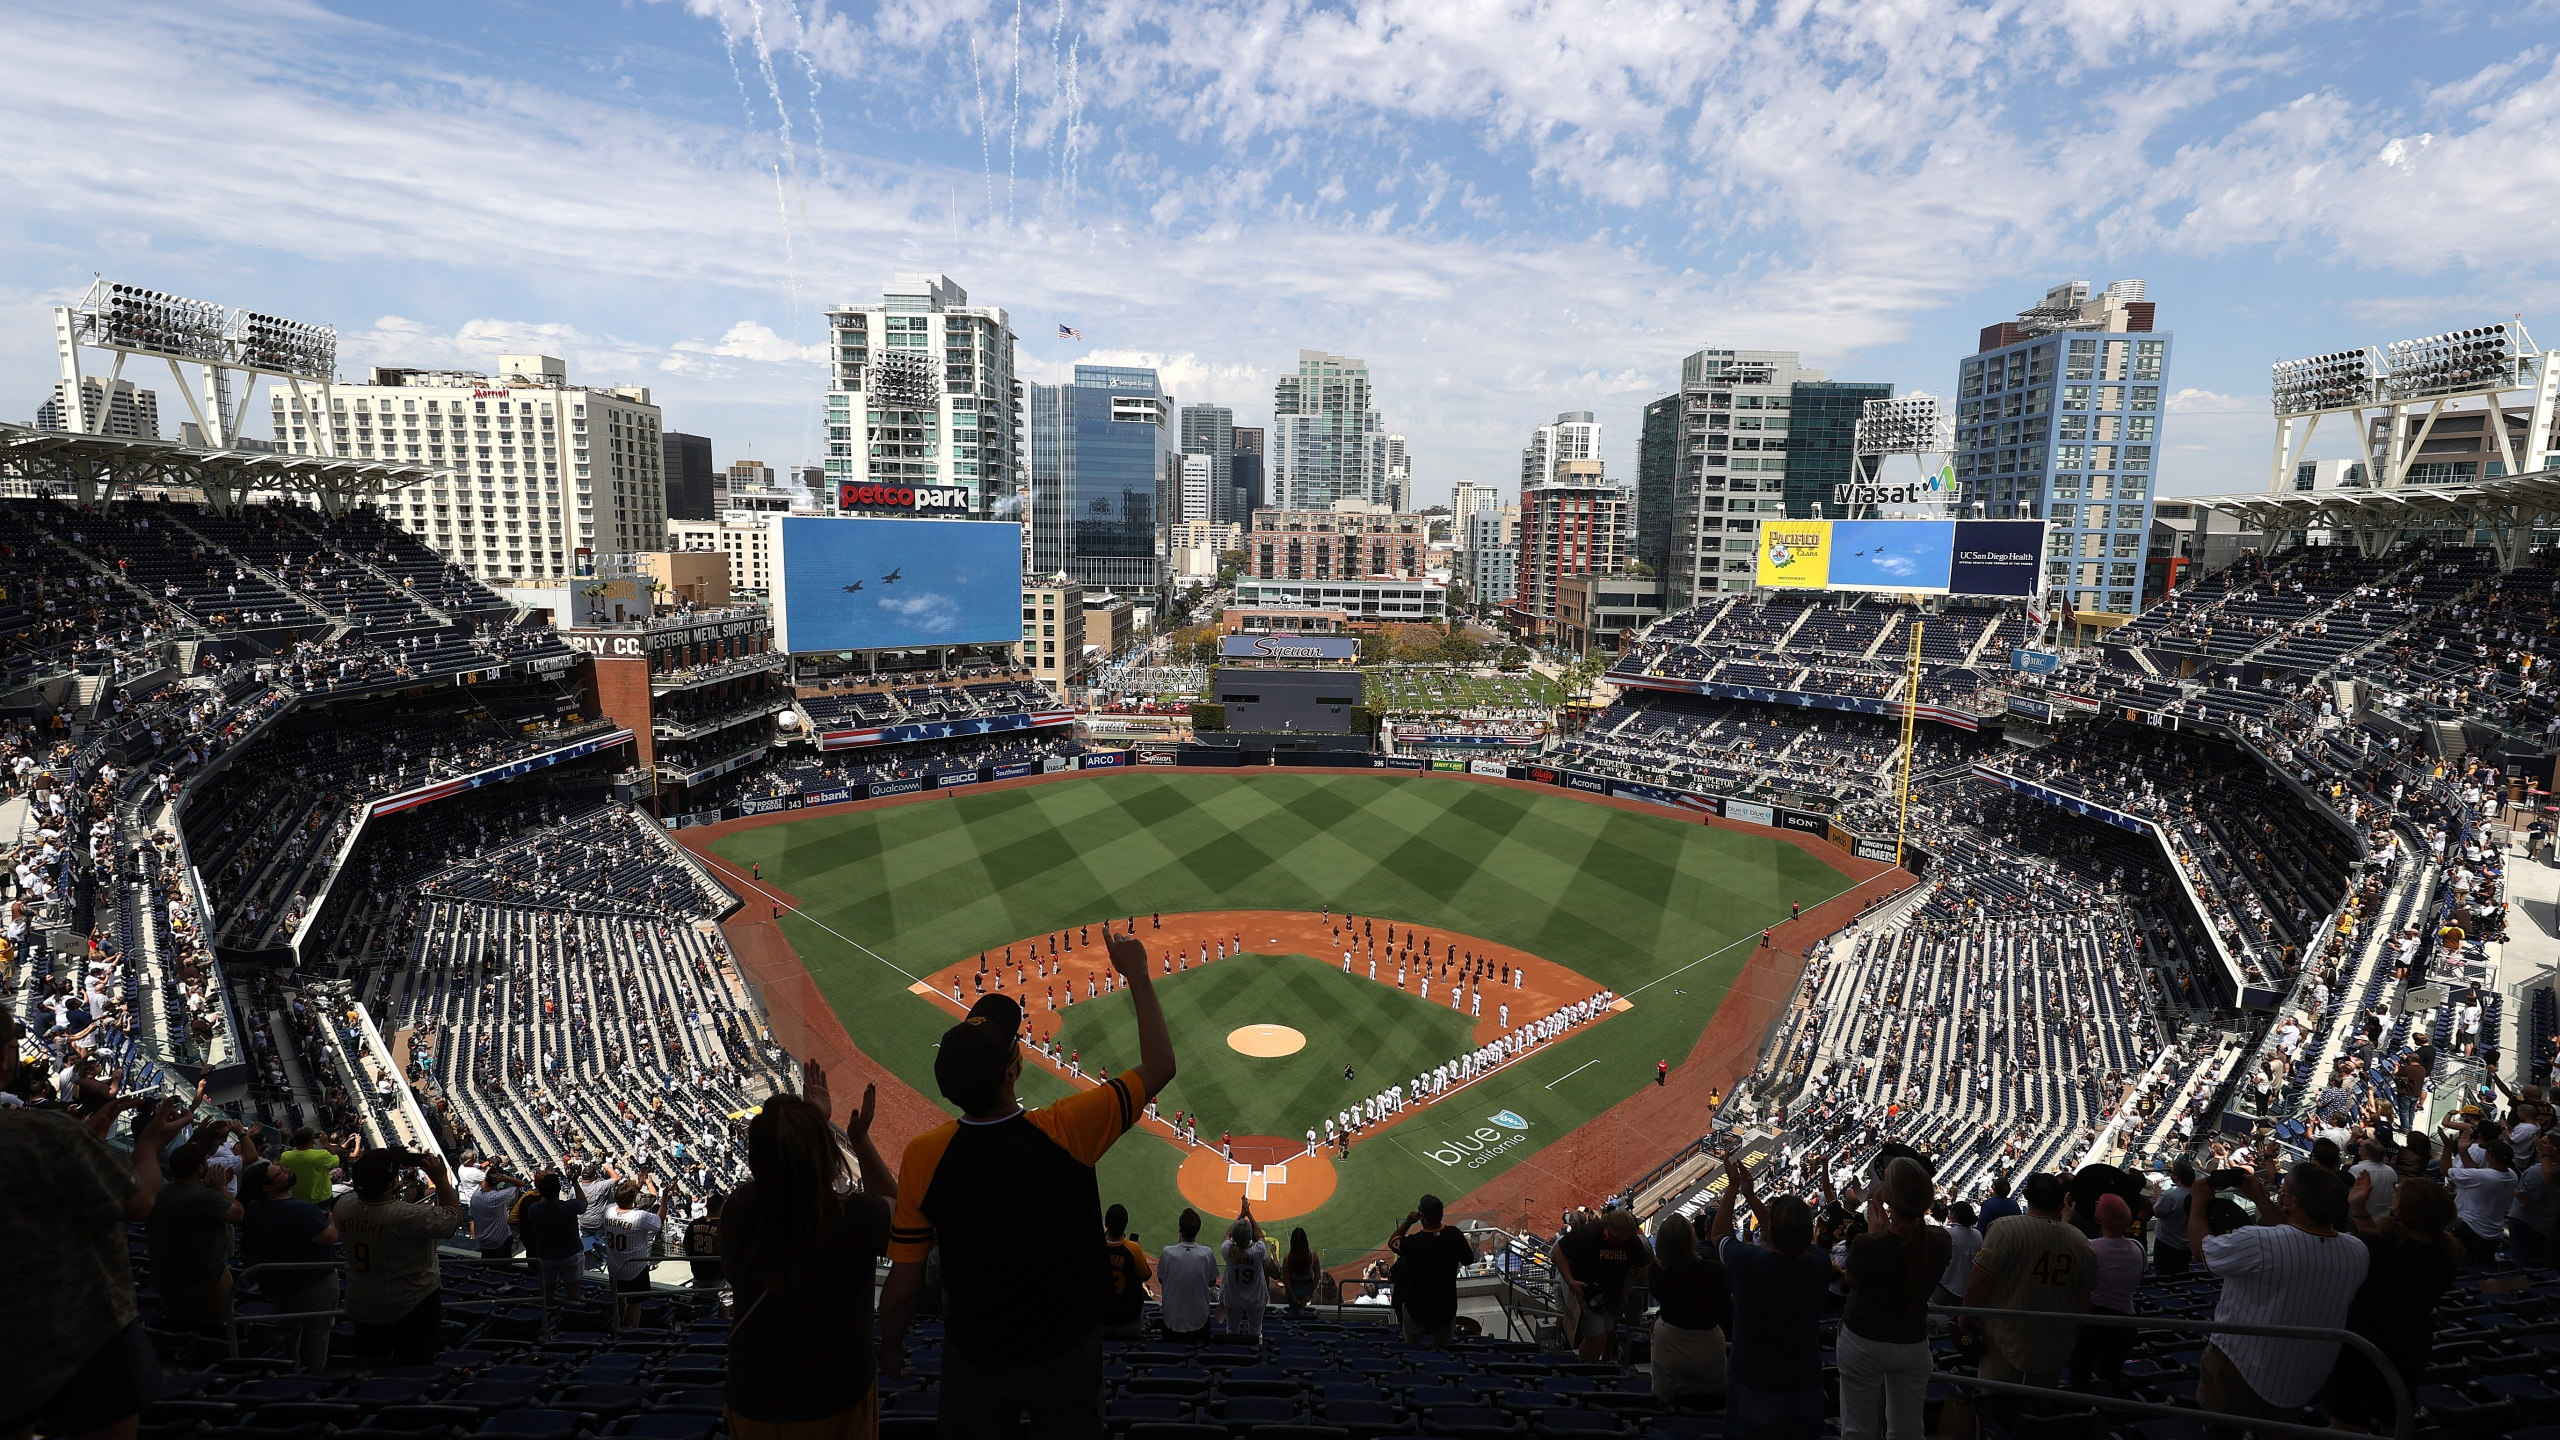 A general view of the stadium as teams were announced prior to a game between the Arizona Diamondbacks and the San Diego Padres on Opening Day at PETCO Park on April 01, 2021 in San Diego, California. (Sean M. Haffey/Getty Images)